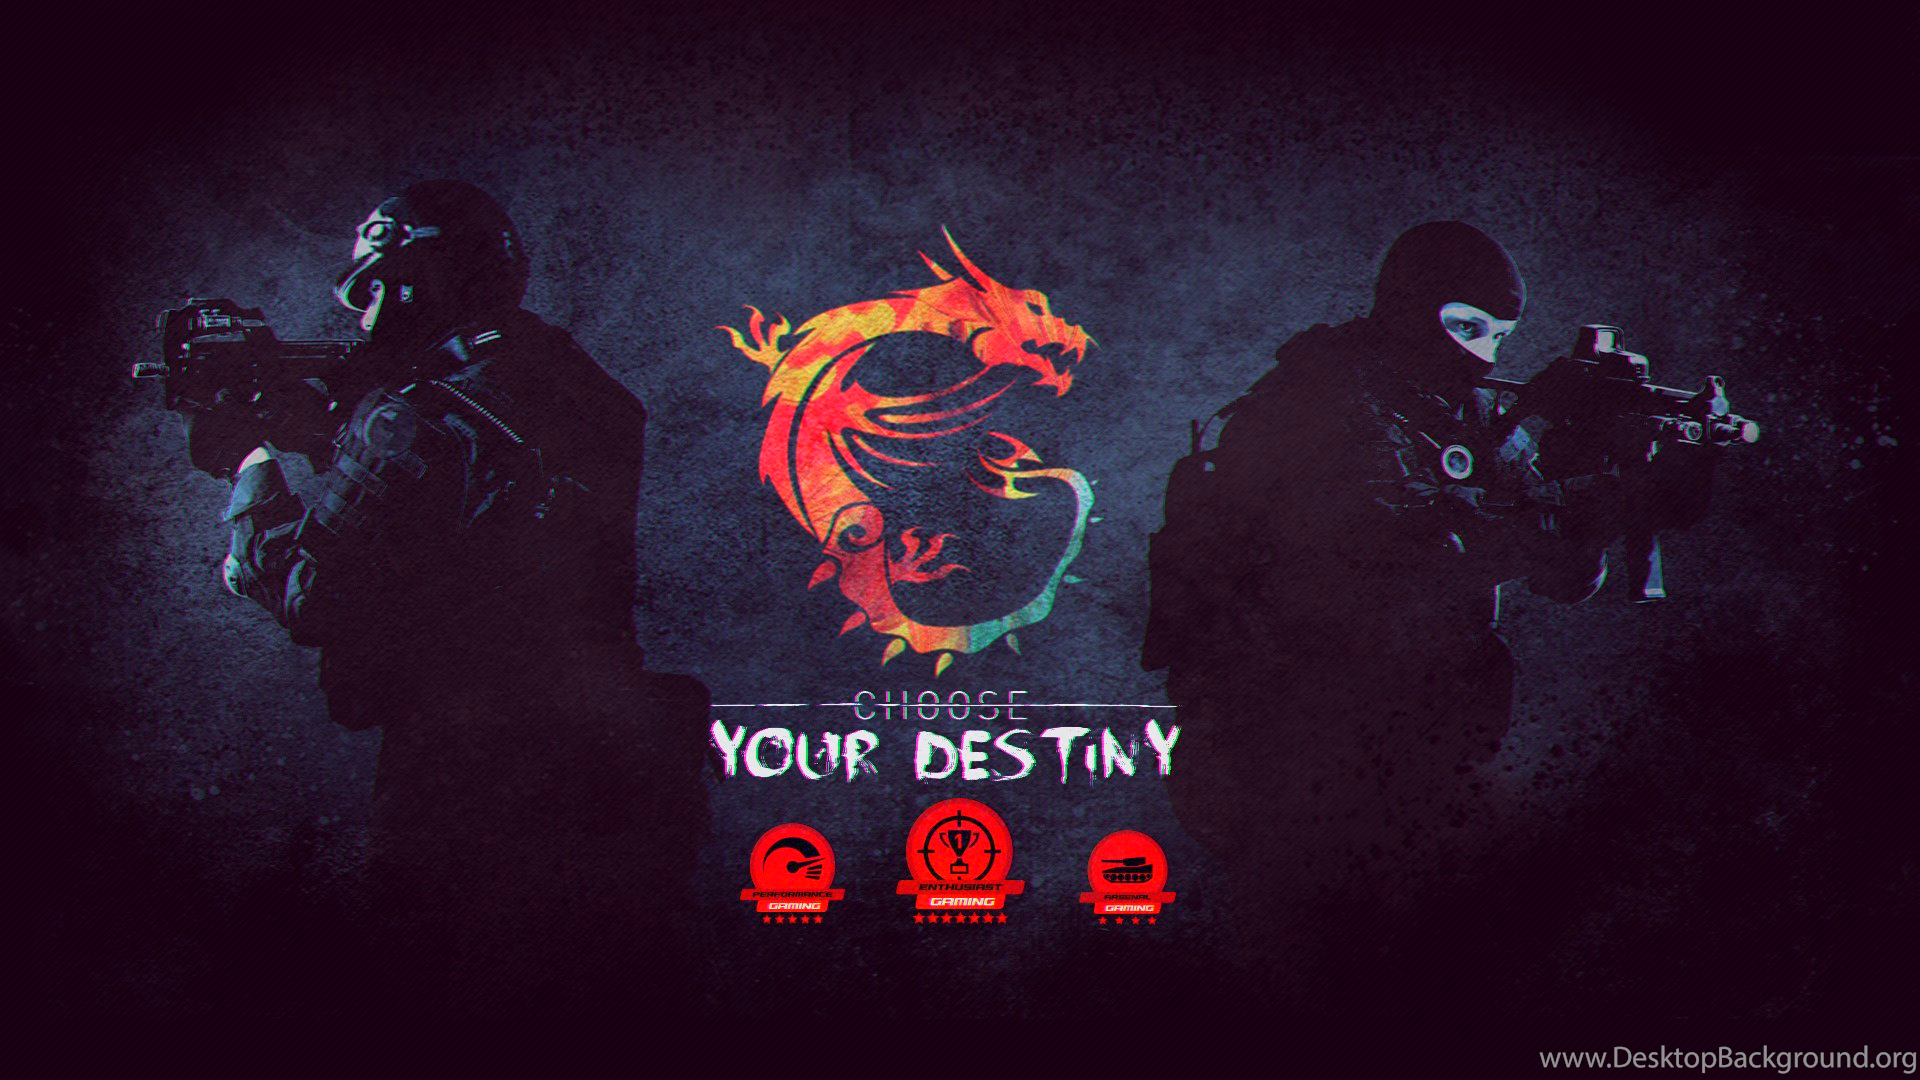 10 New Msi Gaming Series Wallpaper Full Hd 1920 1080 For: MSI Wallpapers CSGO 1080 By RoggerMania On DeviantArt